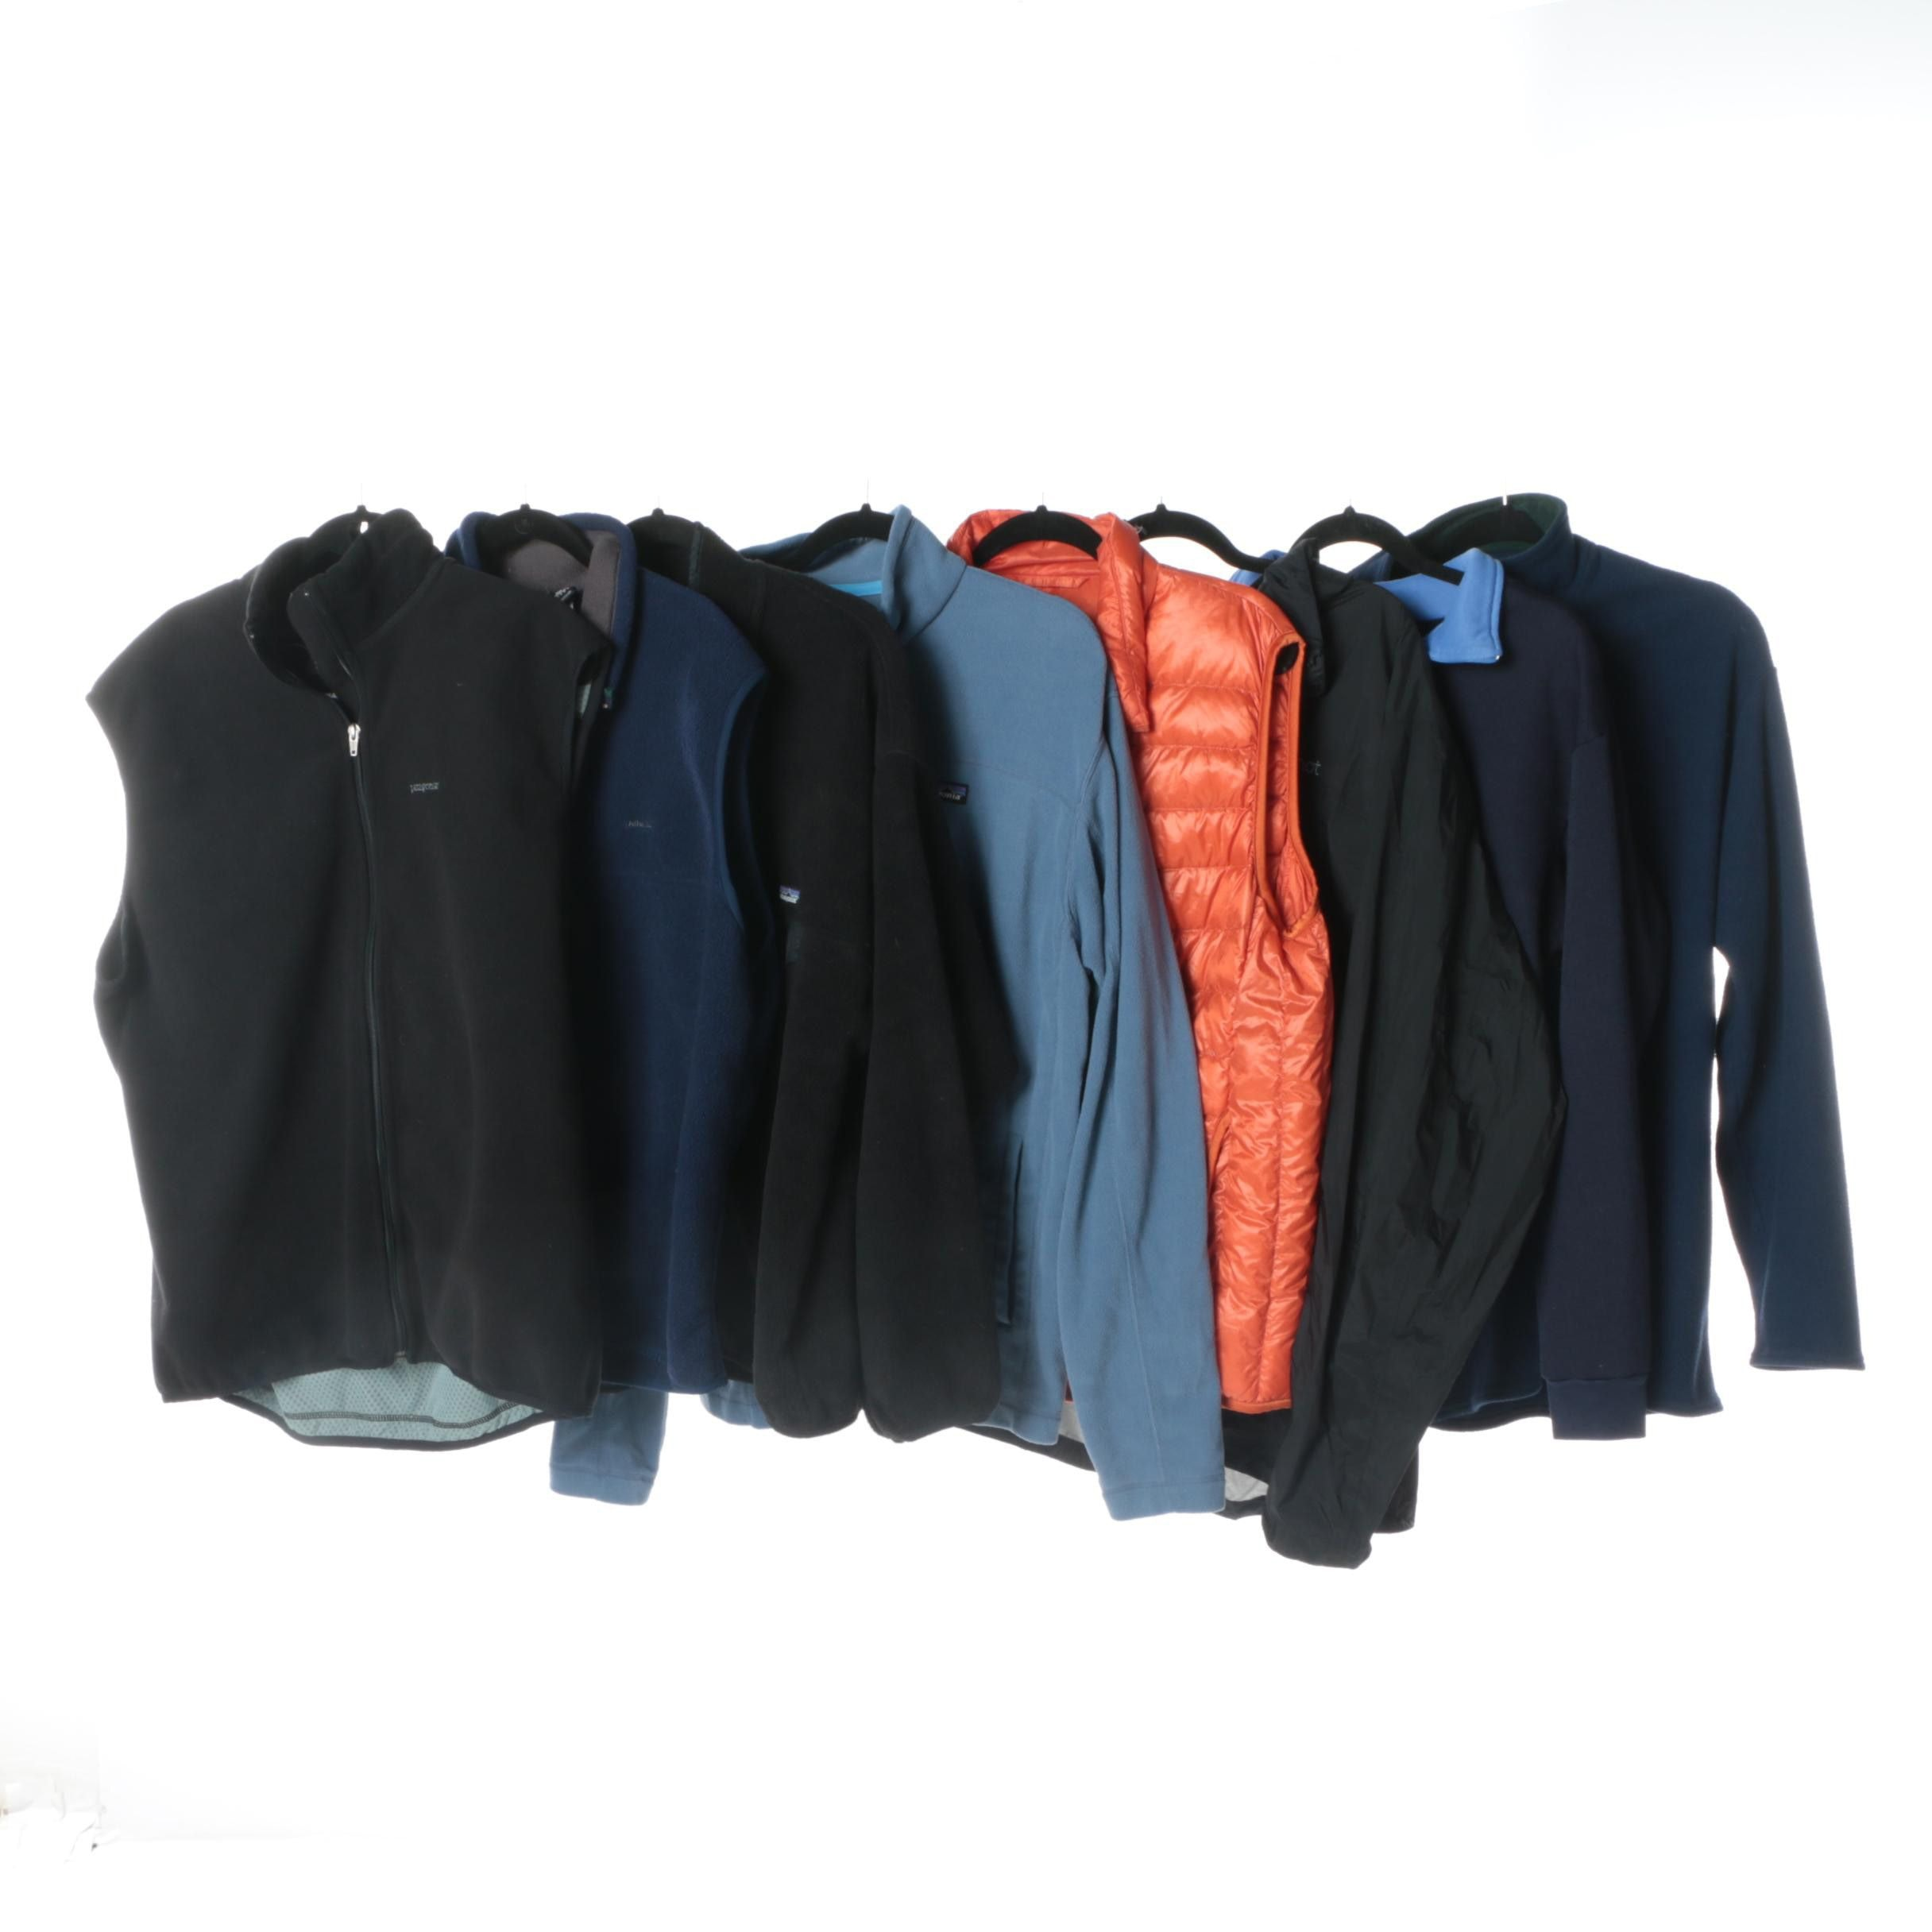 Men's Outerwear Including Patagonia and Marmot